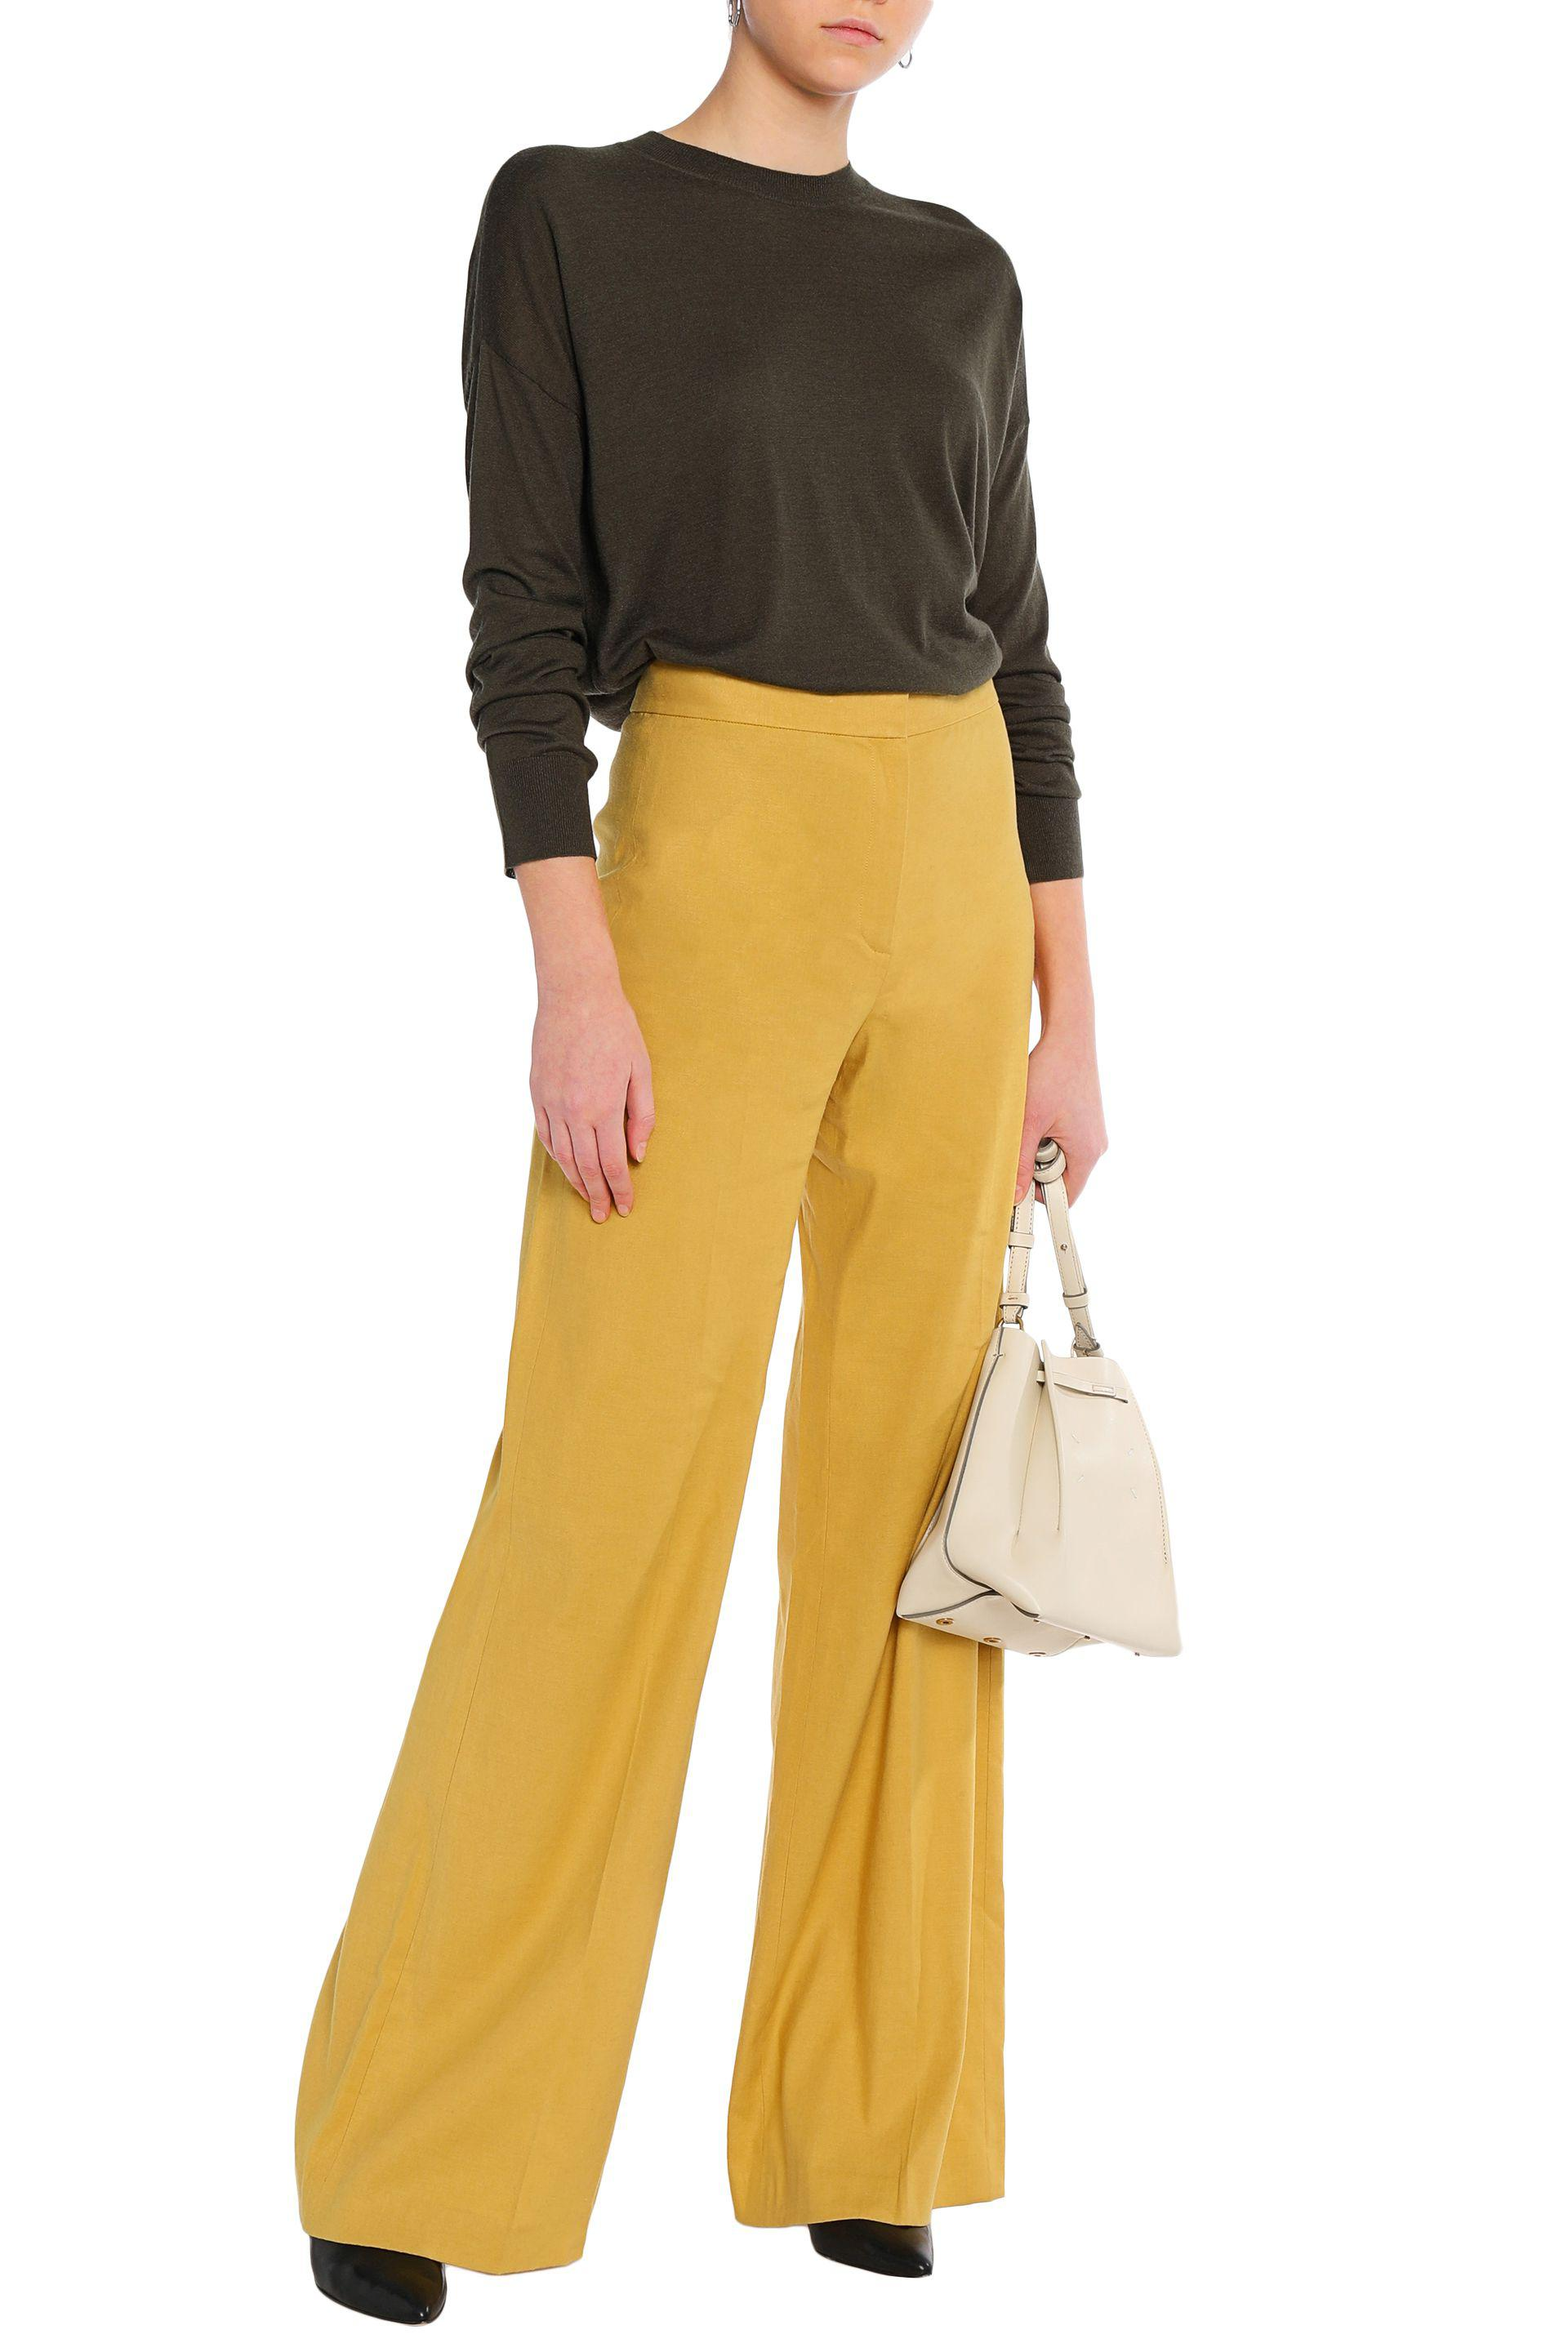 99b06d11aaa6 Theory Linen-blend Wide-leg Pants in Yellow - Lyst